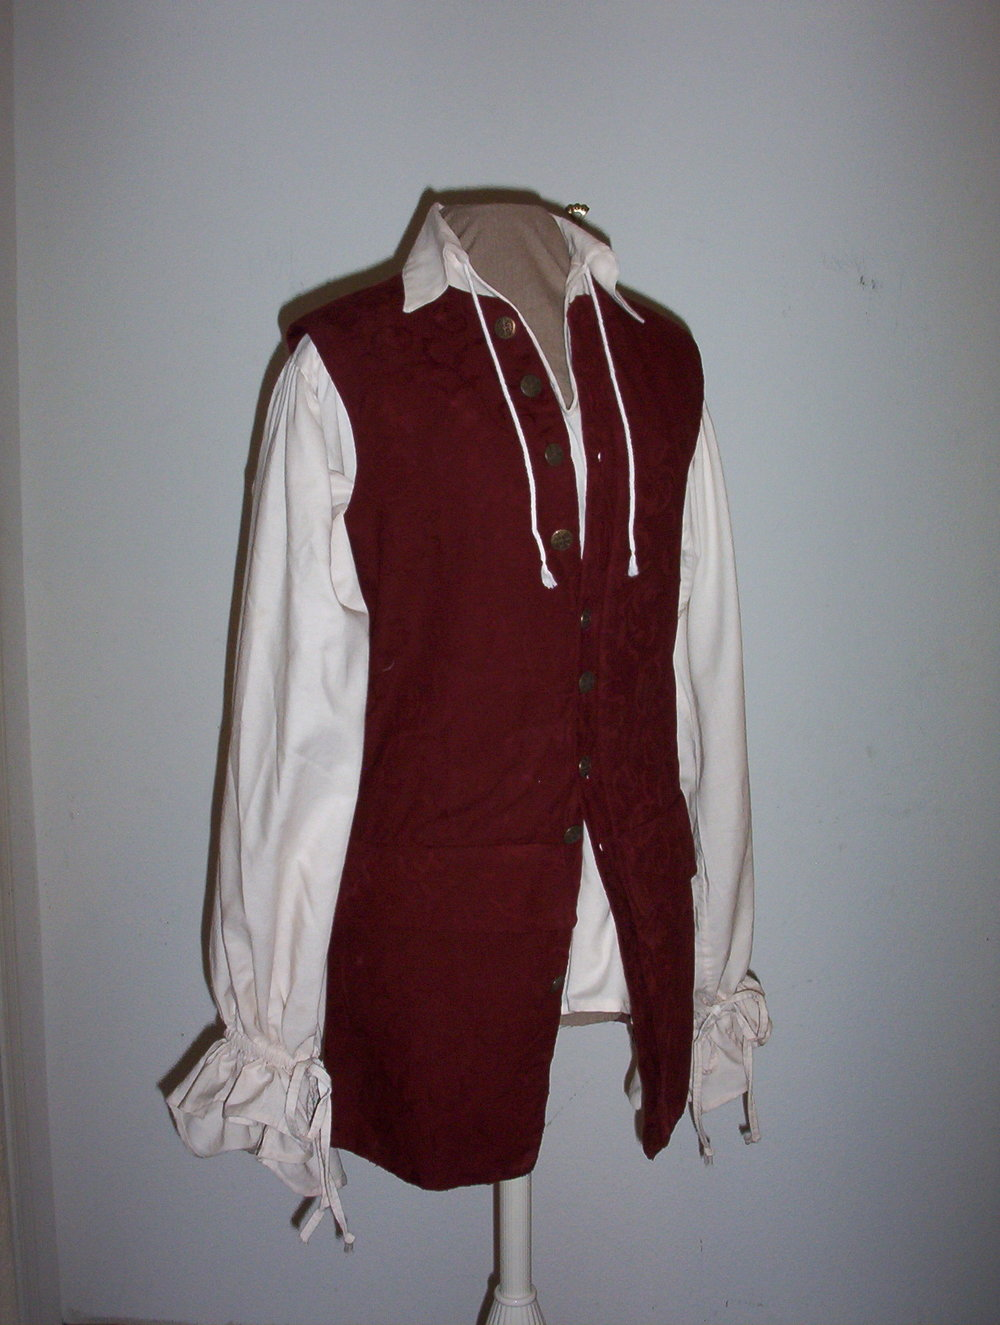 Pirate costume2 3009 (10).jpg